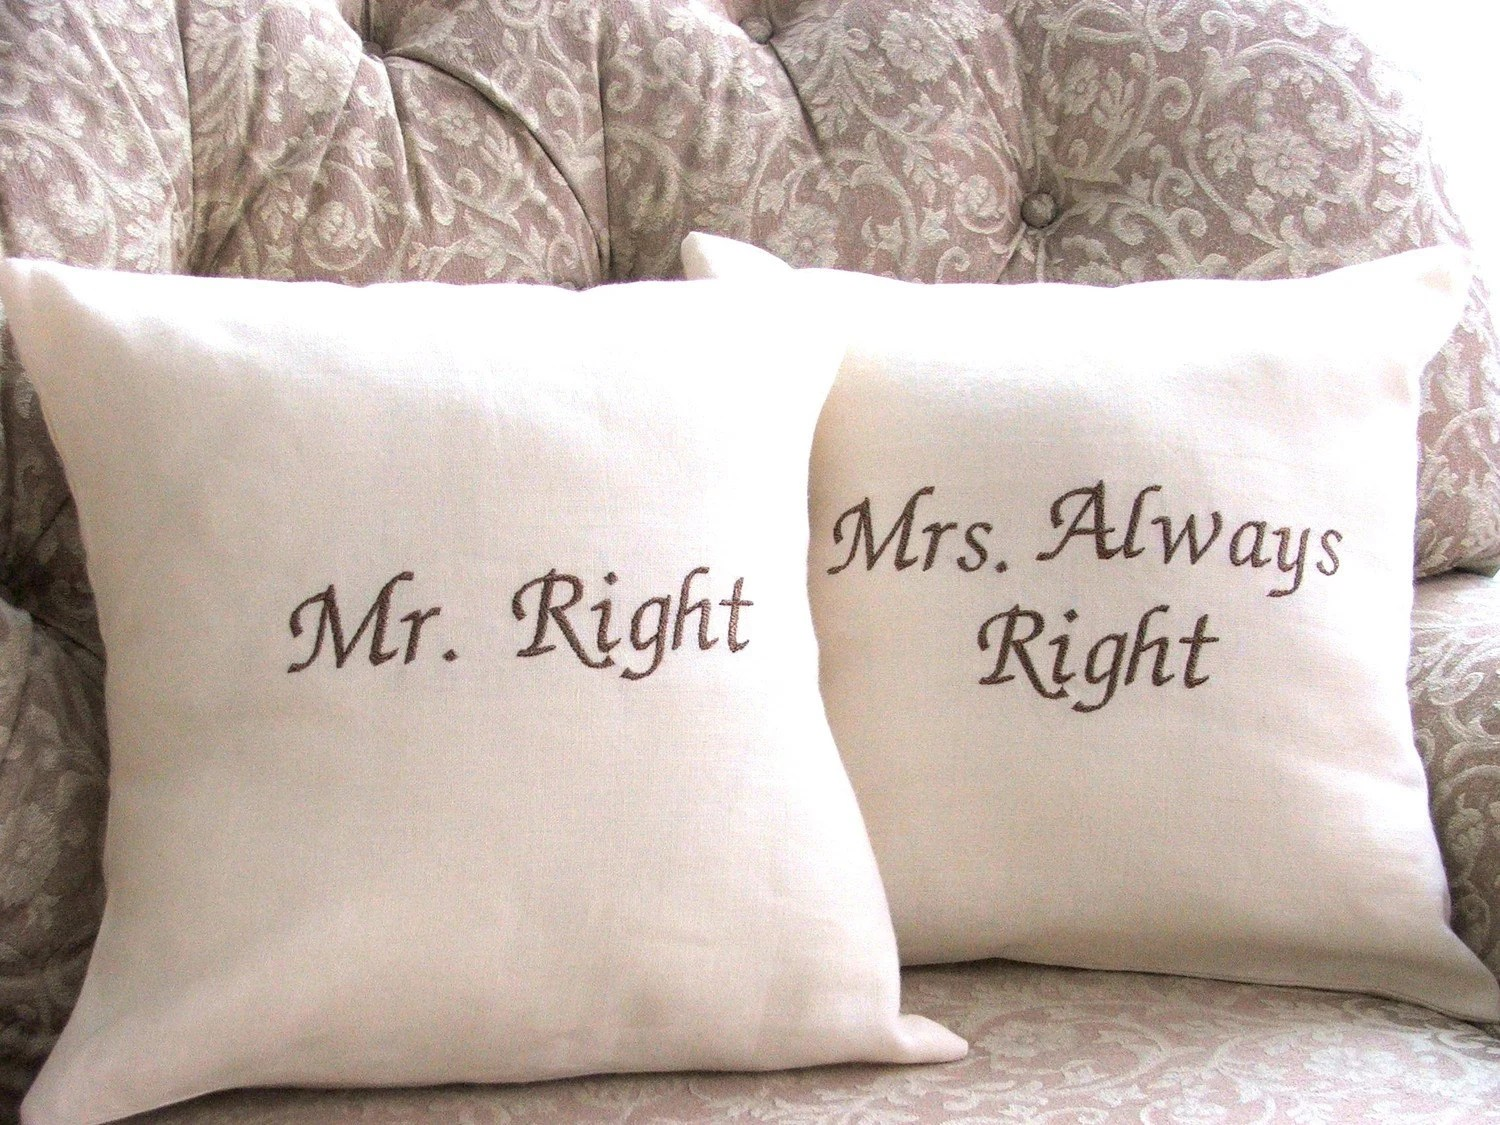 Mr Right Pillow